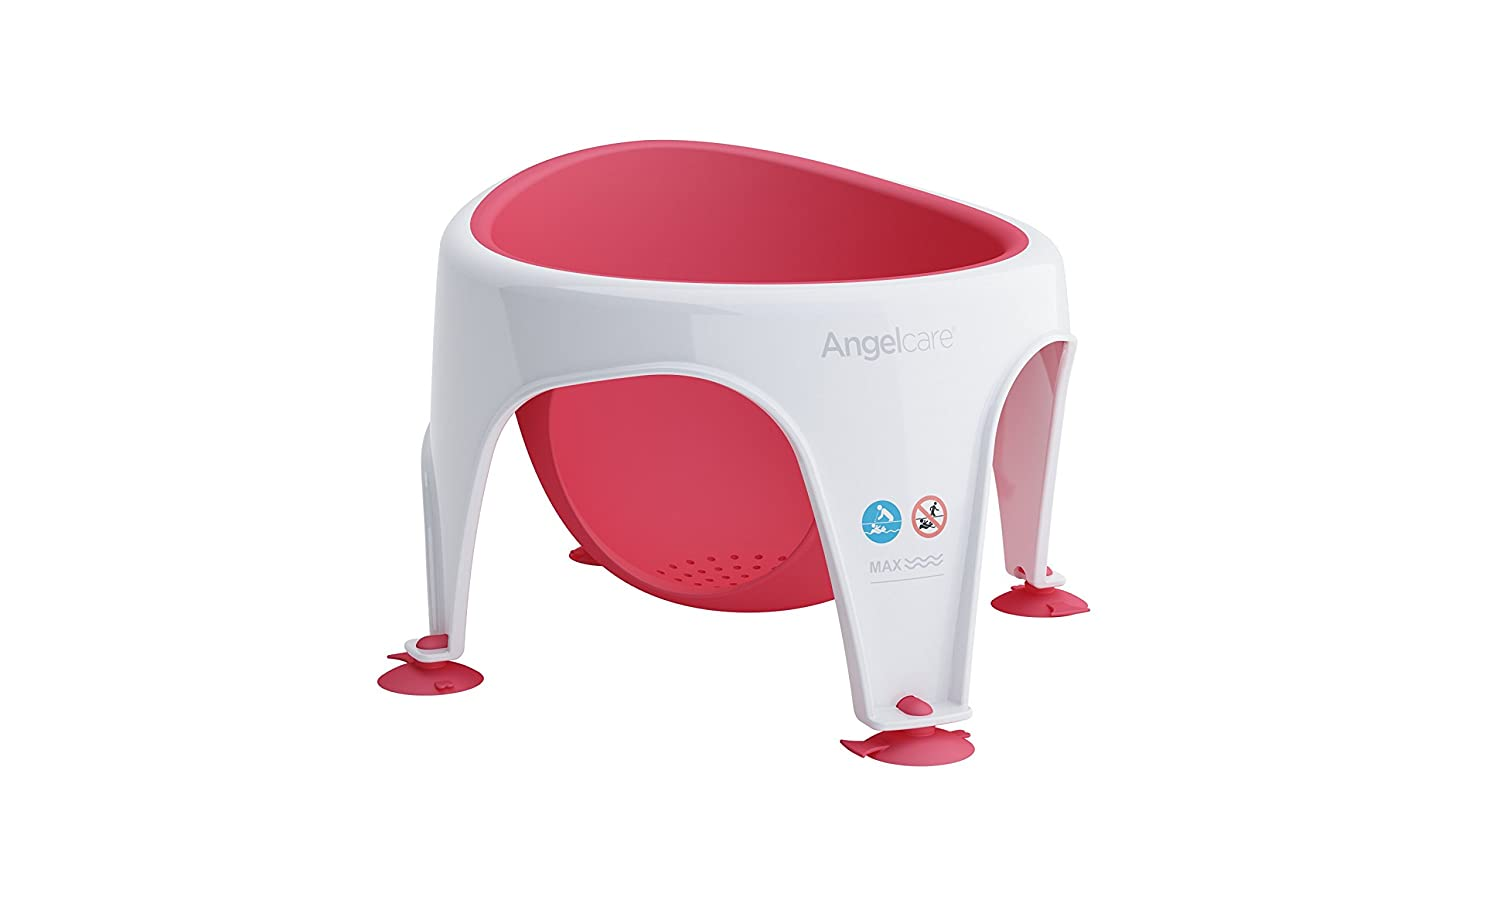 Angelcare Soft Touch Baby Bath Seat - Pink AC3110